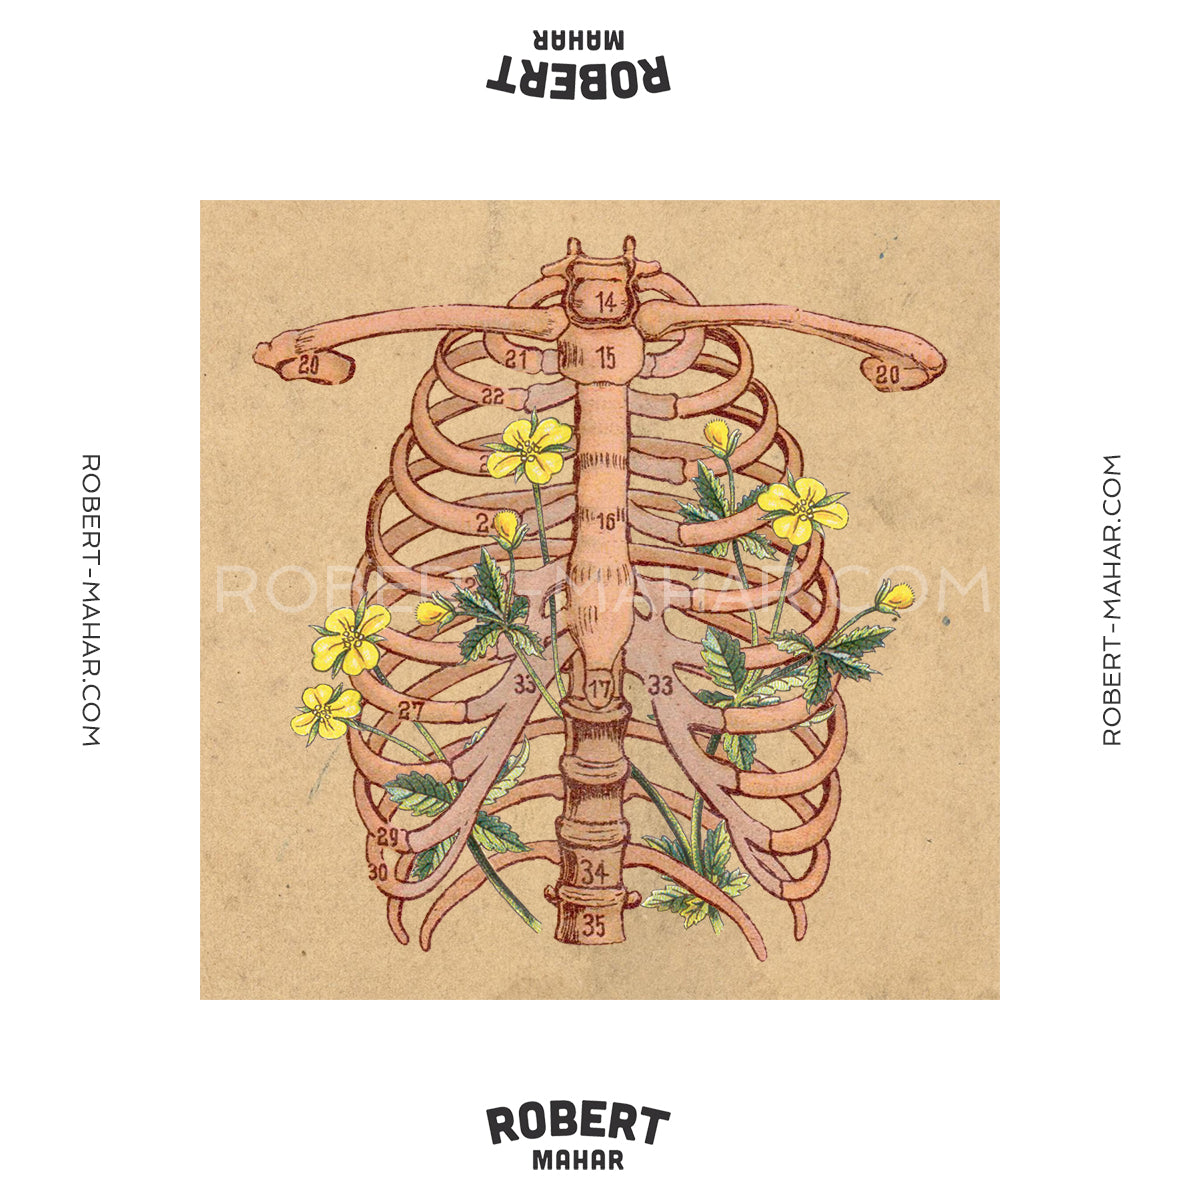 Robert Mahar Will Someone Kindly Find A Problem With My Diagramthanx Rob Right Carousel Arrow